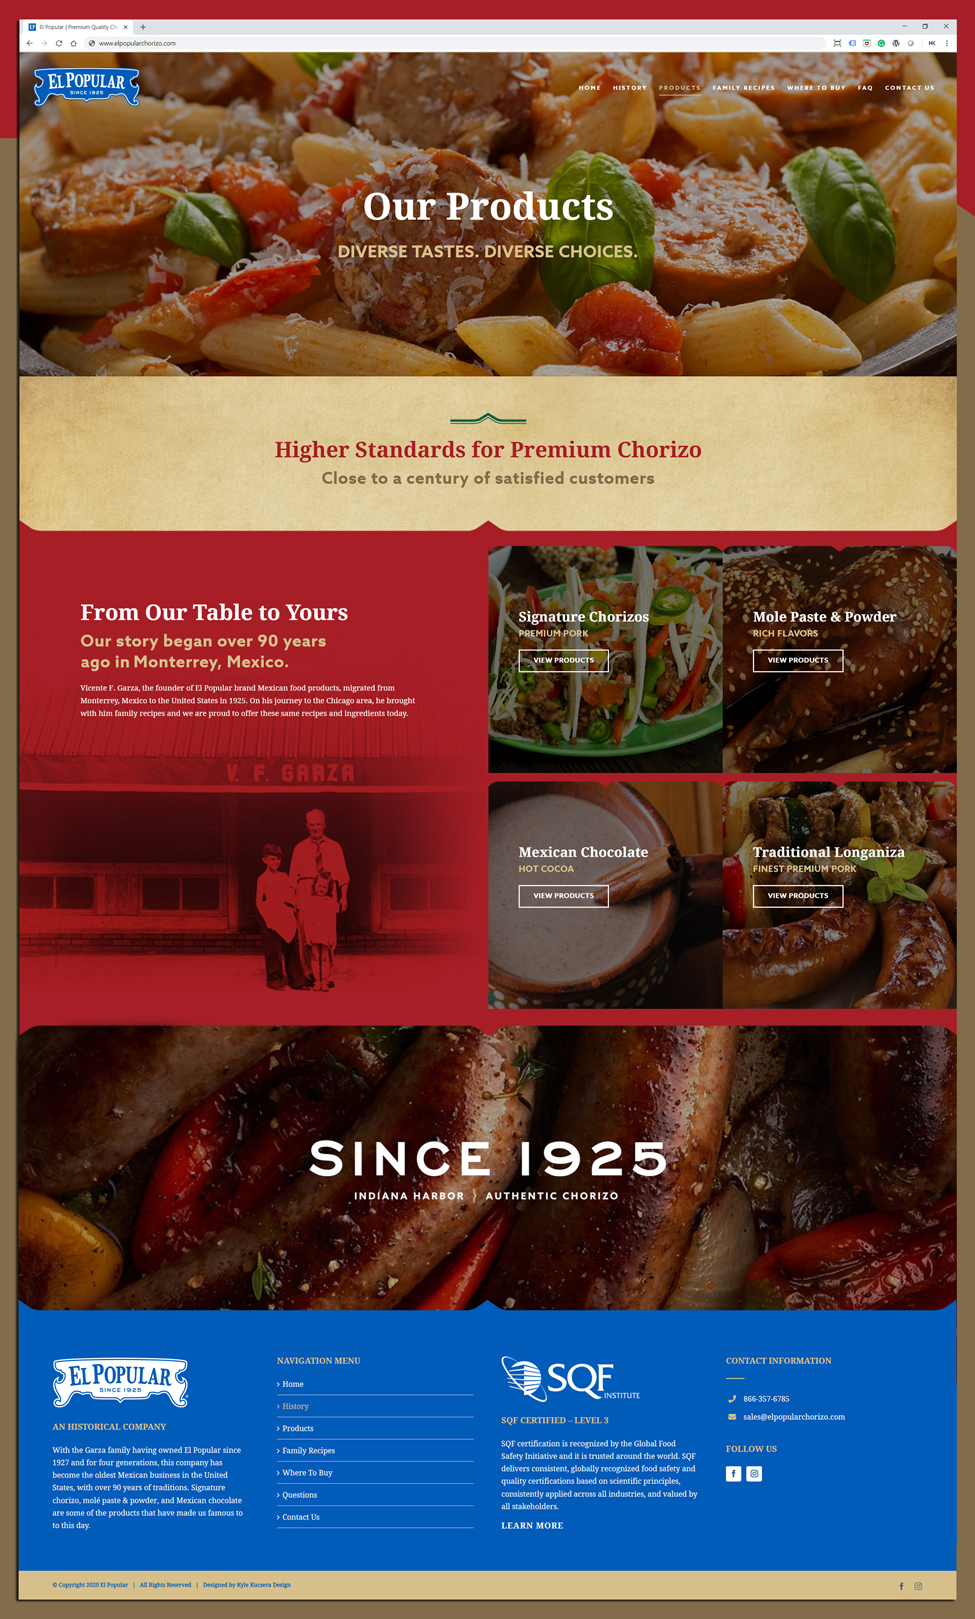 A mexican food company's website product page layout design